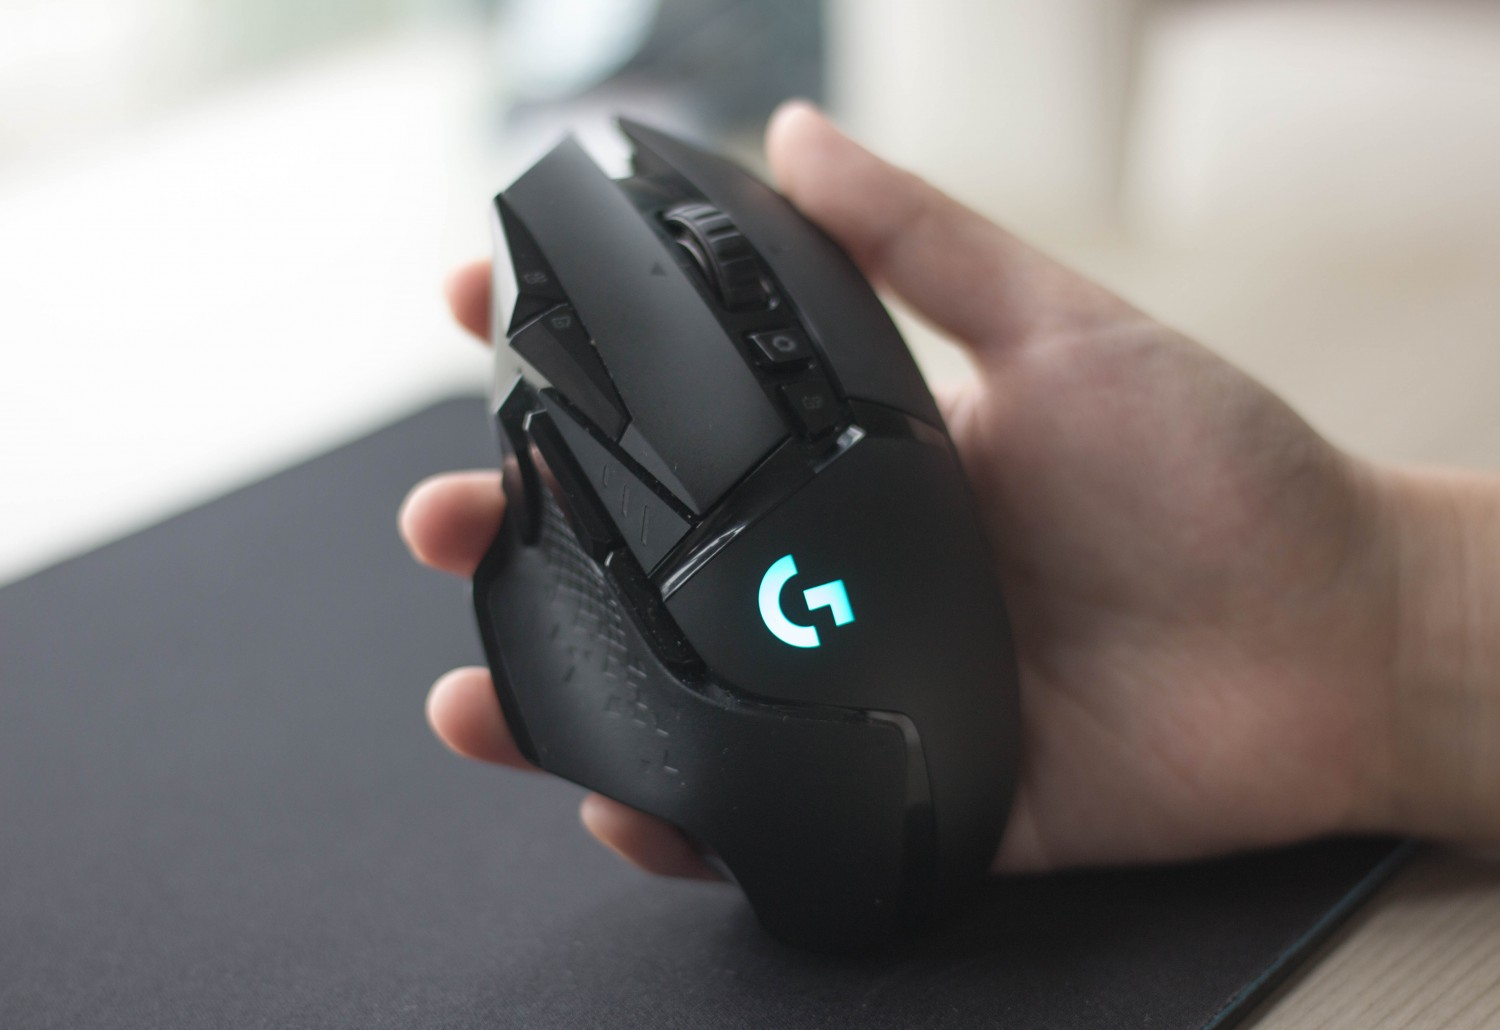 Geek Review: Logitech G502 Lightspeed Wireless Gaming Mouse With